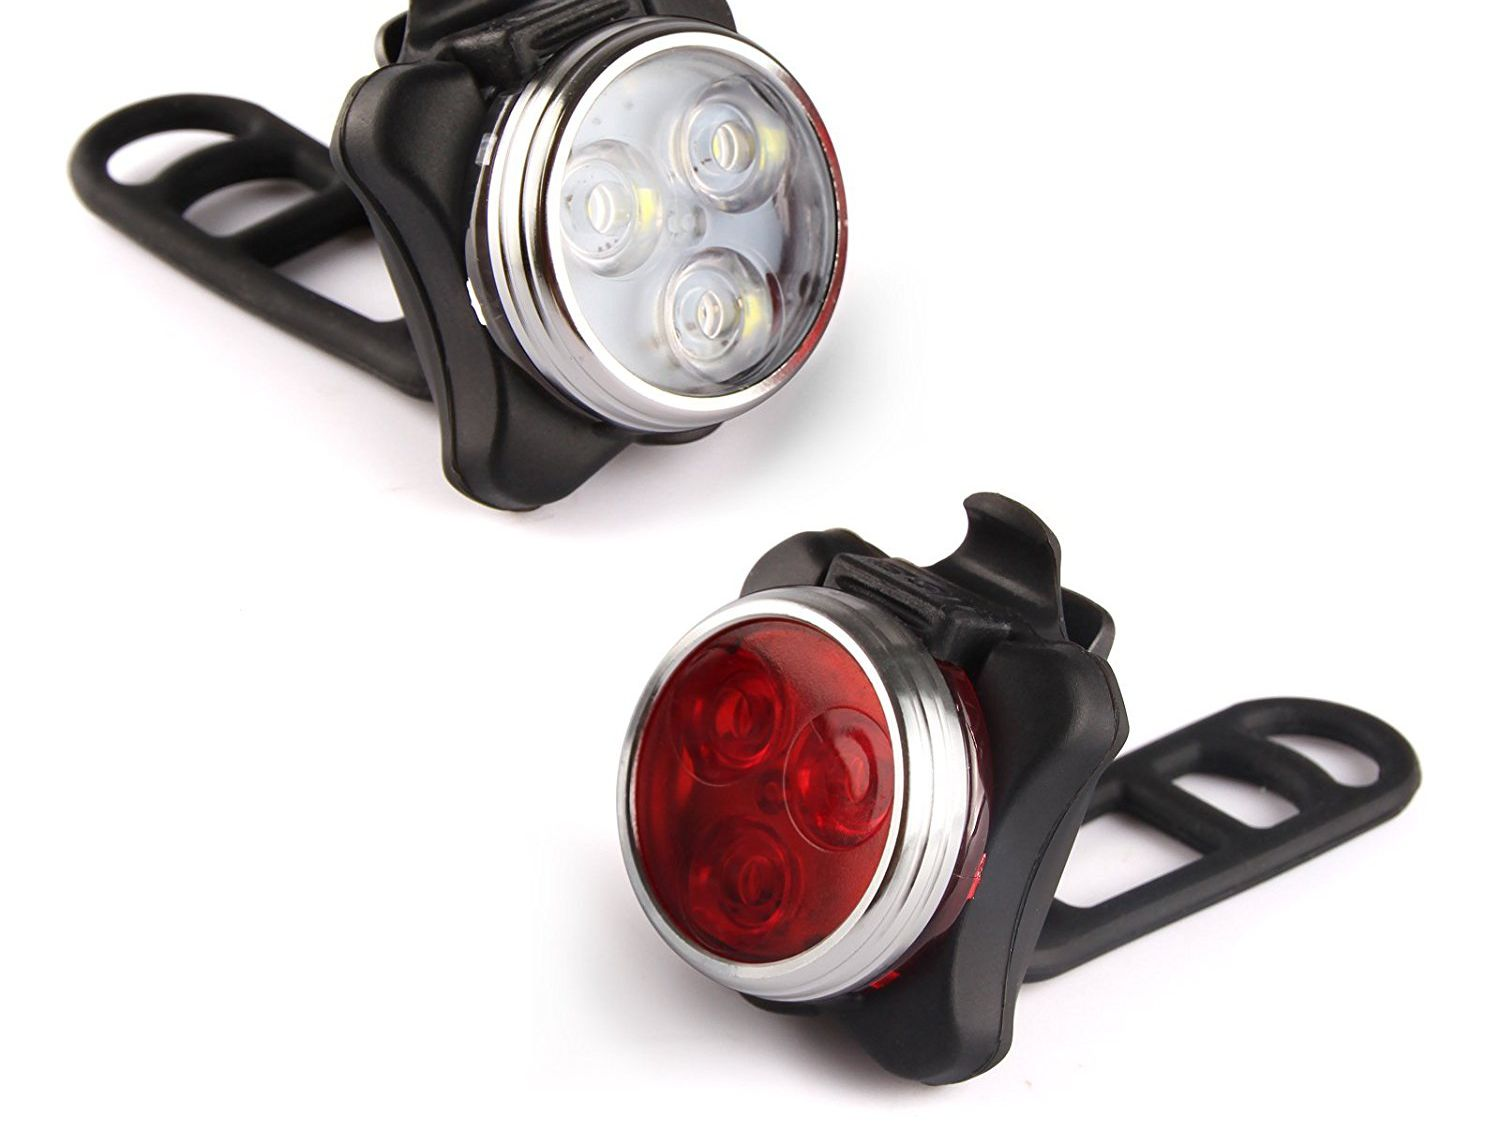 New Waterproof 5 White LED Front Head Lamp /& 5 Red LED Rear Tail Bike Light Set